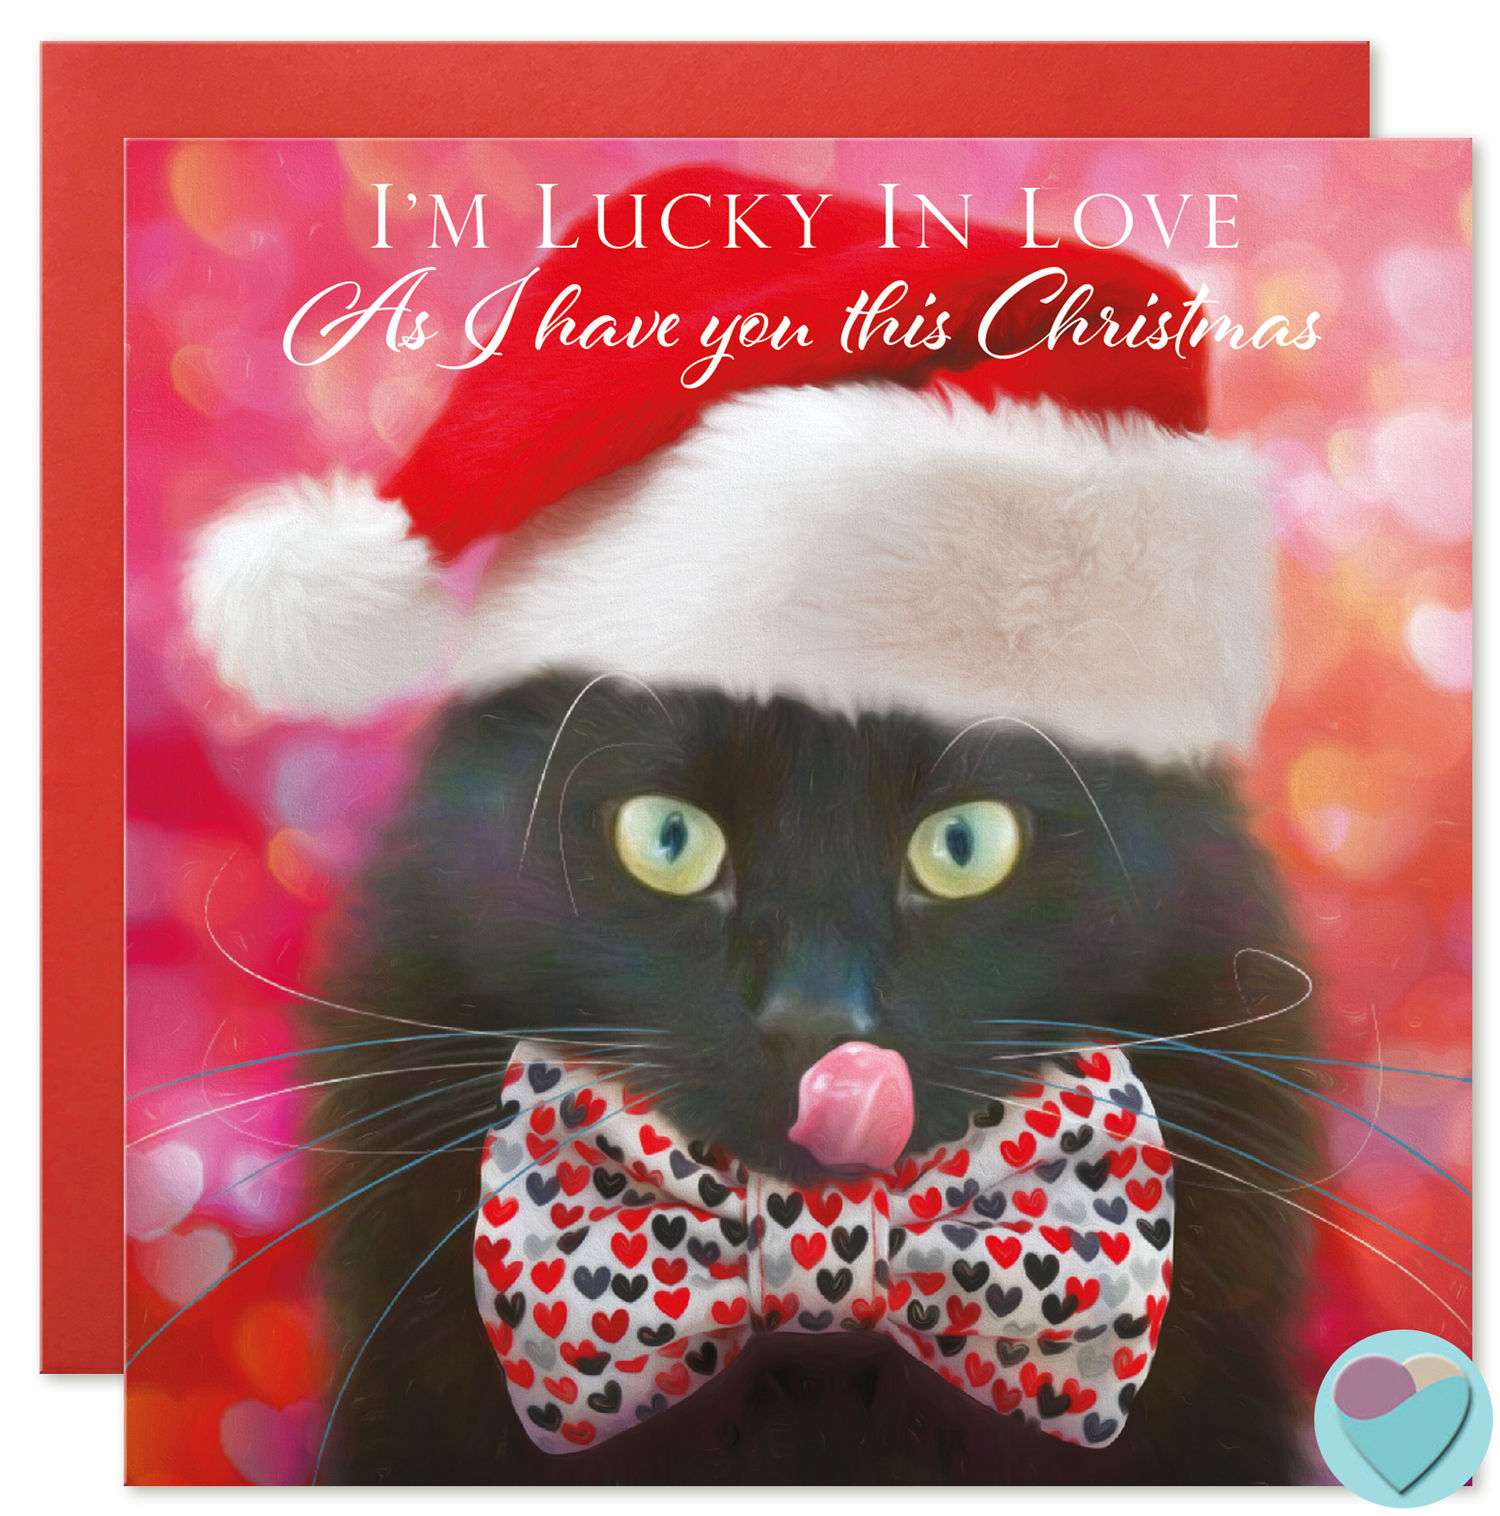 Black Cat Christmas Cards - Are you lucky enough to have one?